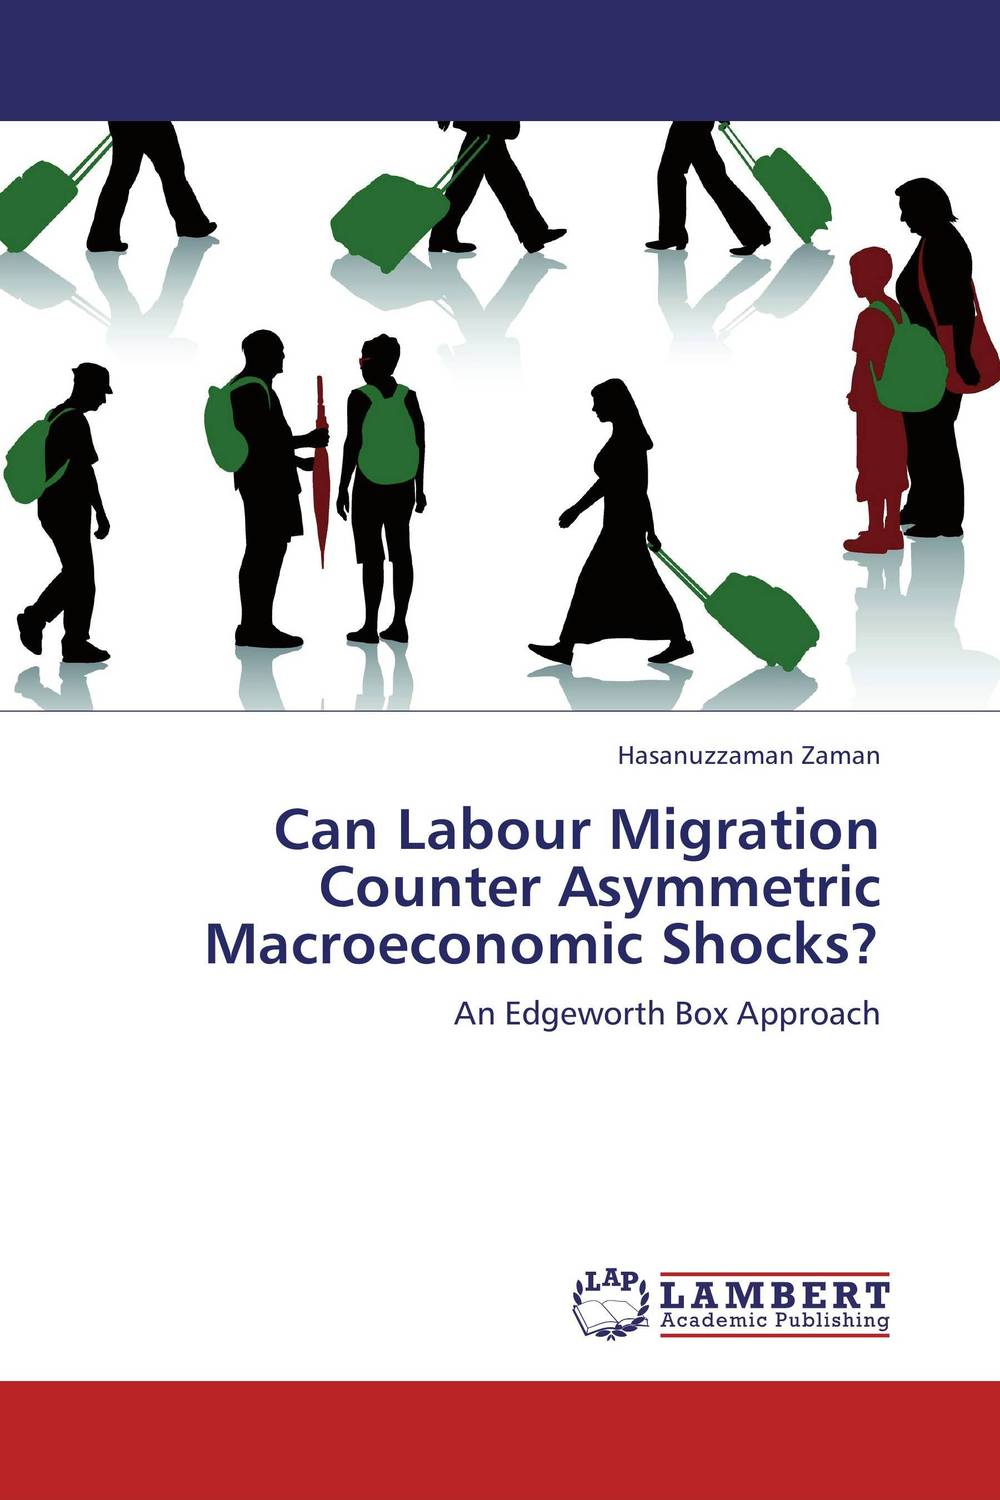 Can Labour Migration Counter Asymmetric Macroeconomic Shocks?